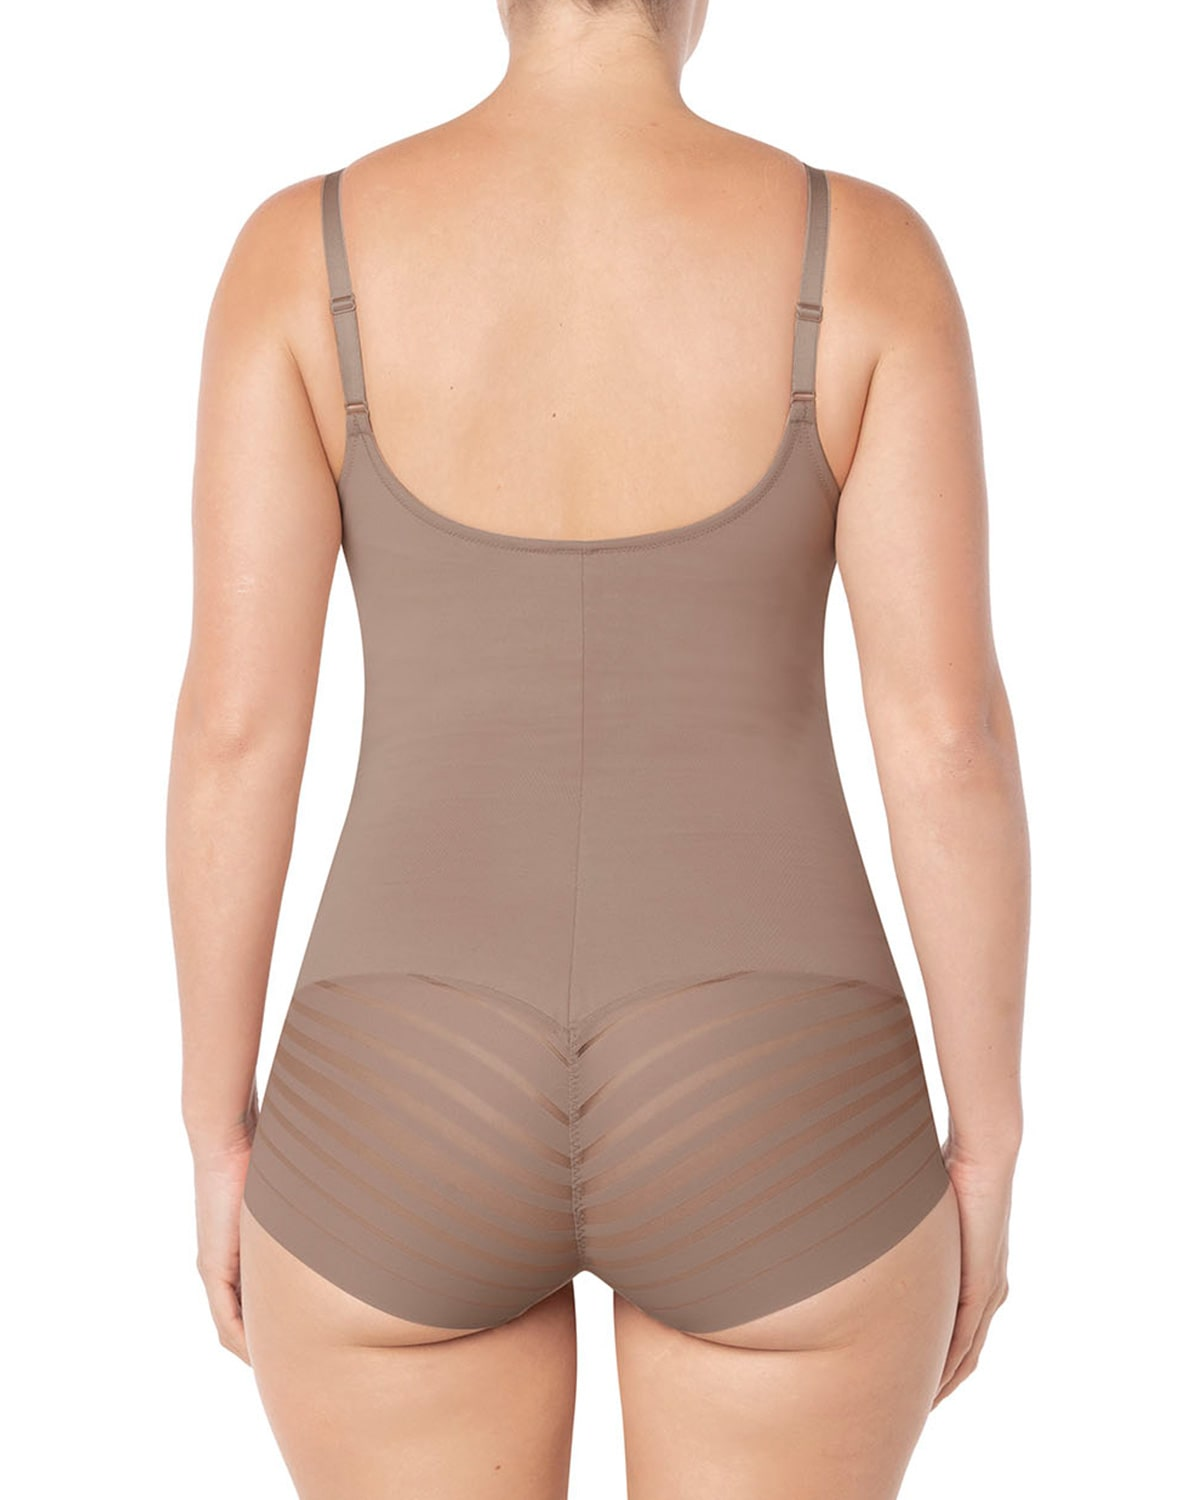 61d42f7892 Leonisa Undetectable Firm Control Bodysuit Shaper Free Shipping